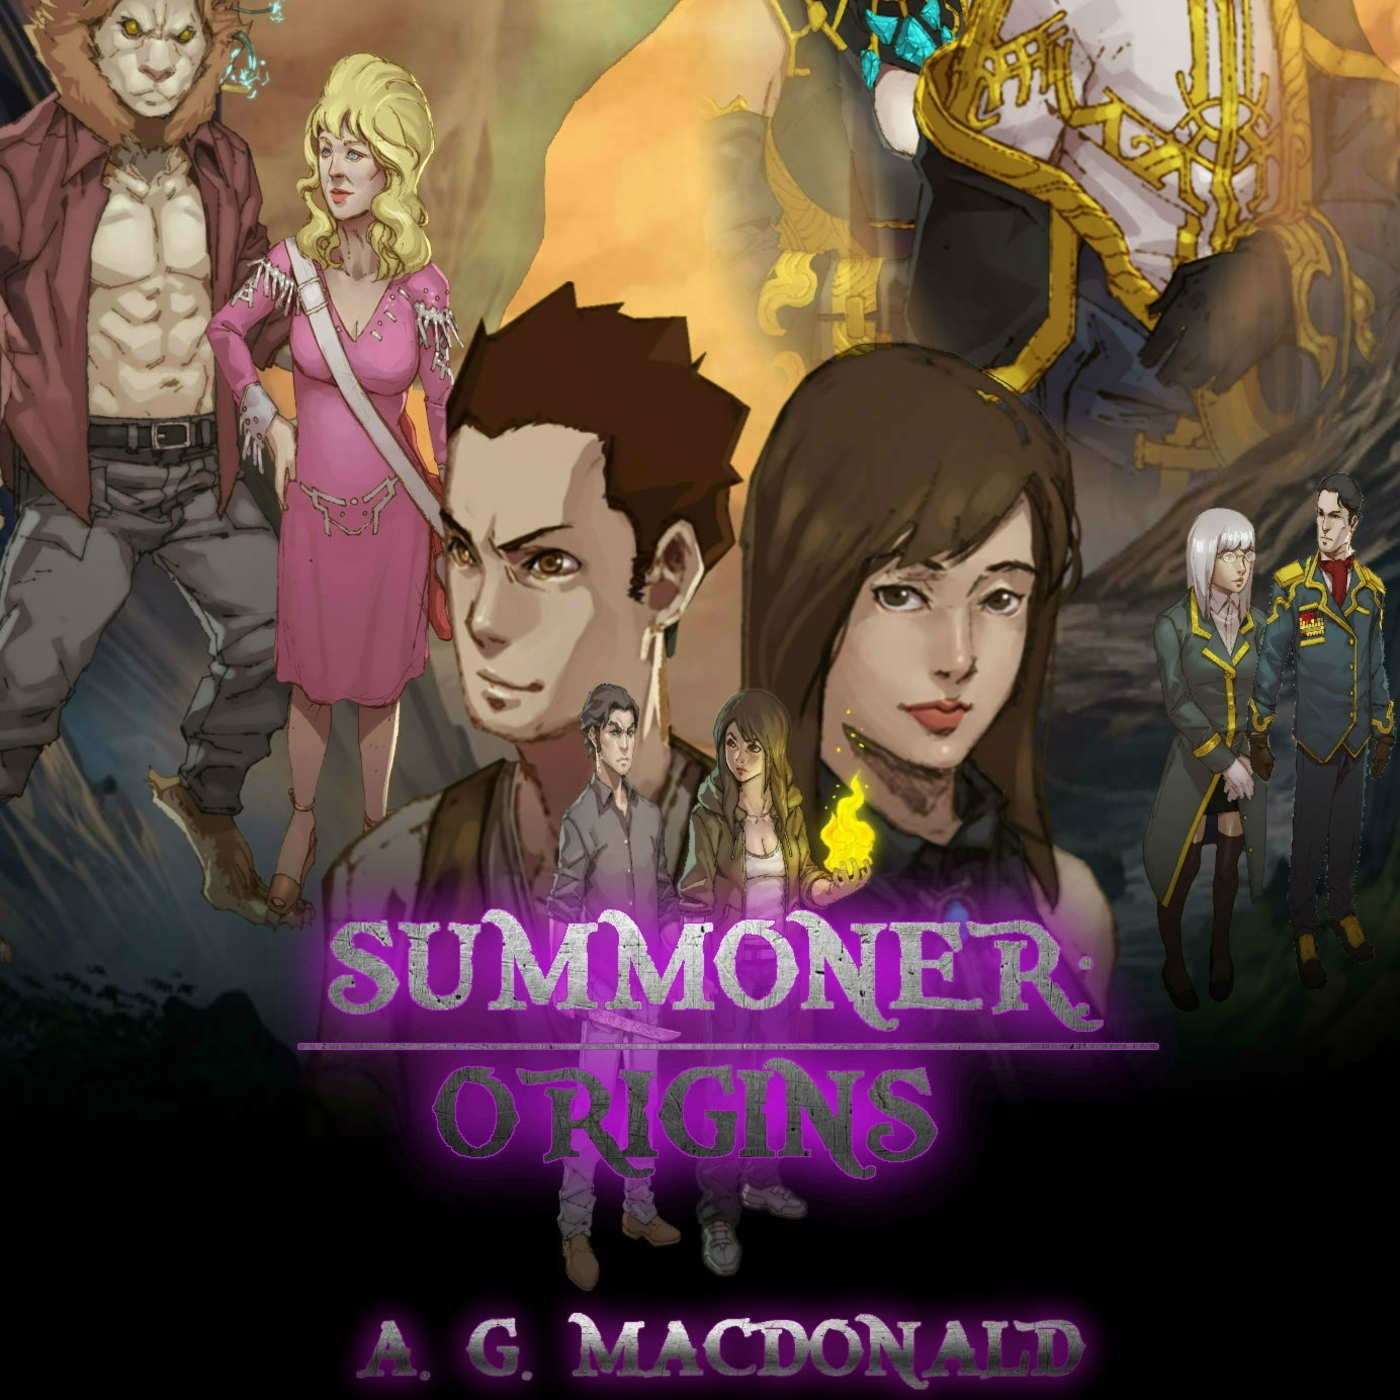 Summoner: Origins